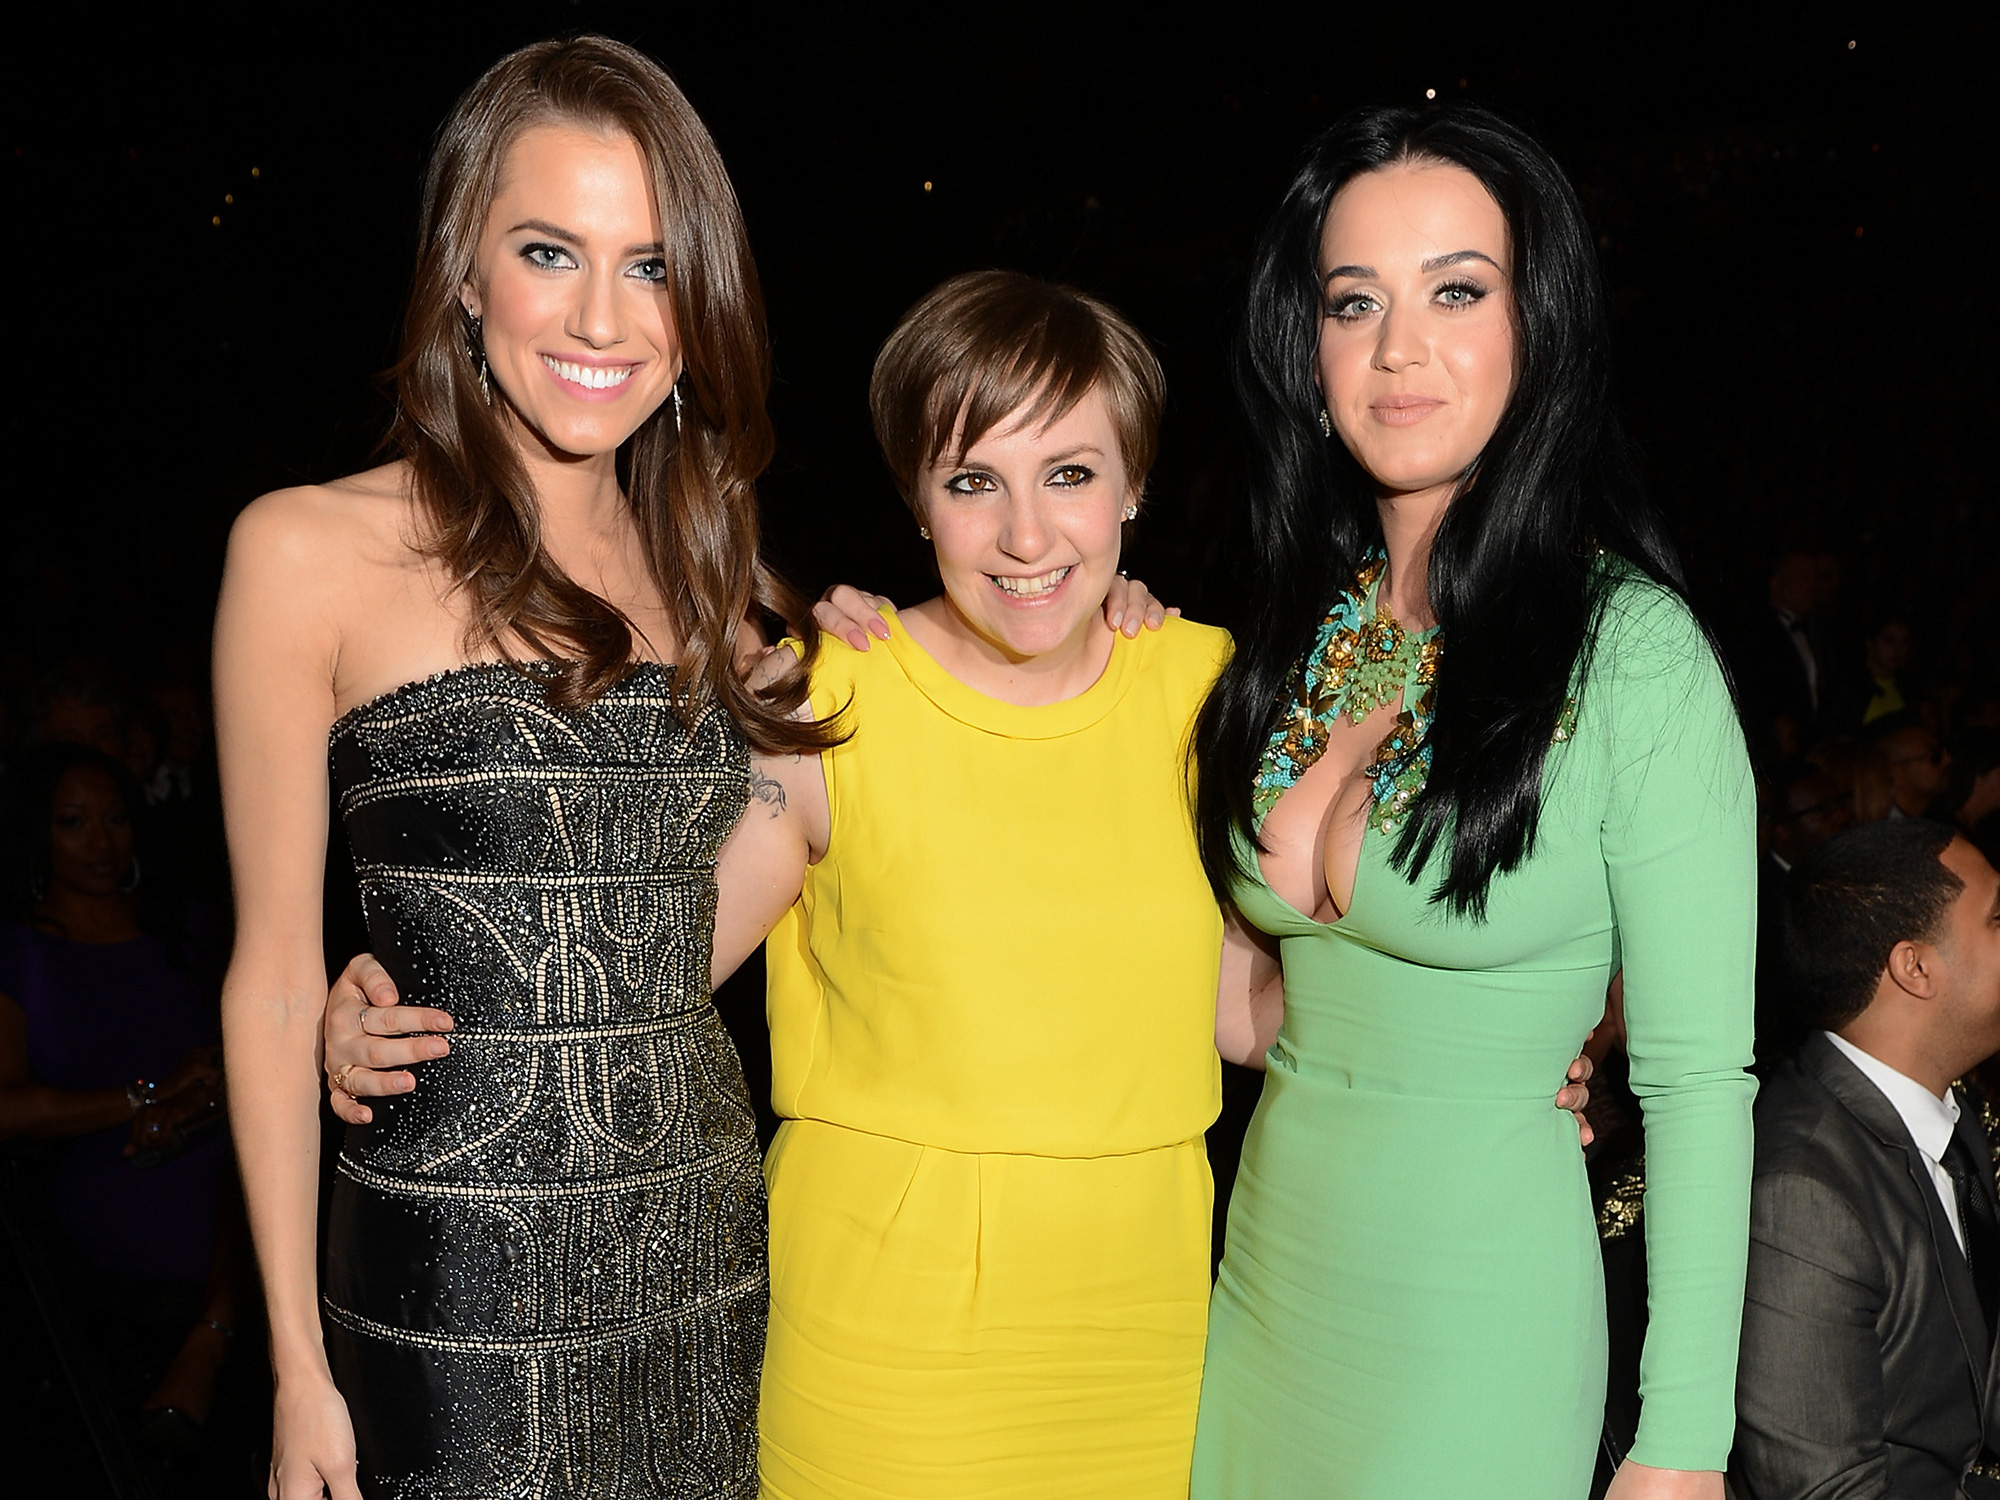 LOS ANGELES, CA - FEBRUARY 10: (L-R) Actresses Allison Williams, Lena Dunham, and singer Katy Perry attend the 55th Annual GRAMMY Awards at STAPLES Center on February 10, 2013 in Los Angeles, California. (Photo by Larry Busacca/WireImage)